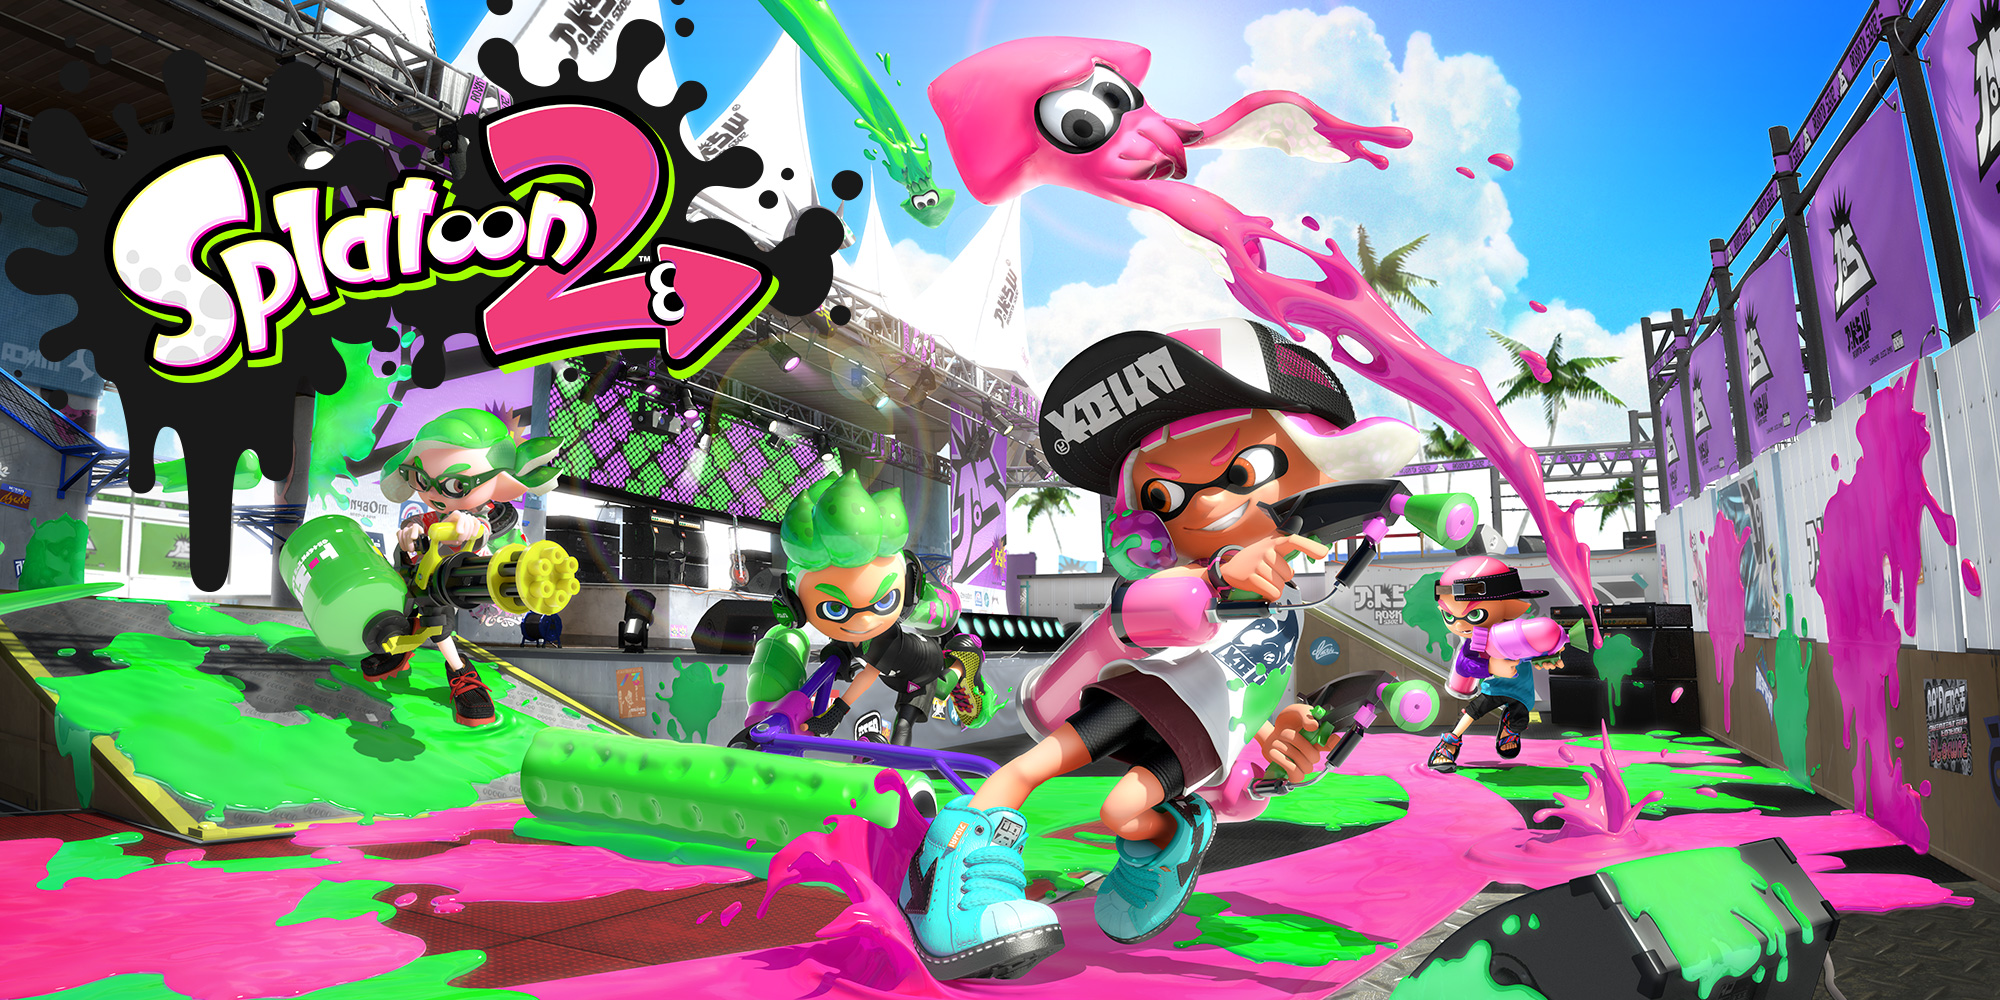 Get Ready To Splat With Splatoon 2 This Weekend